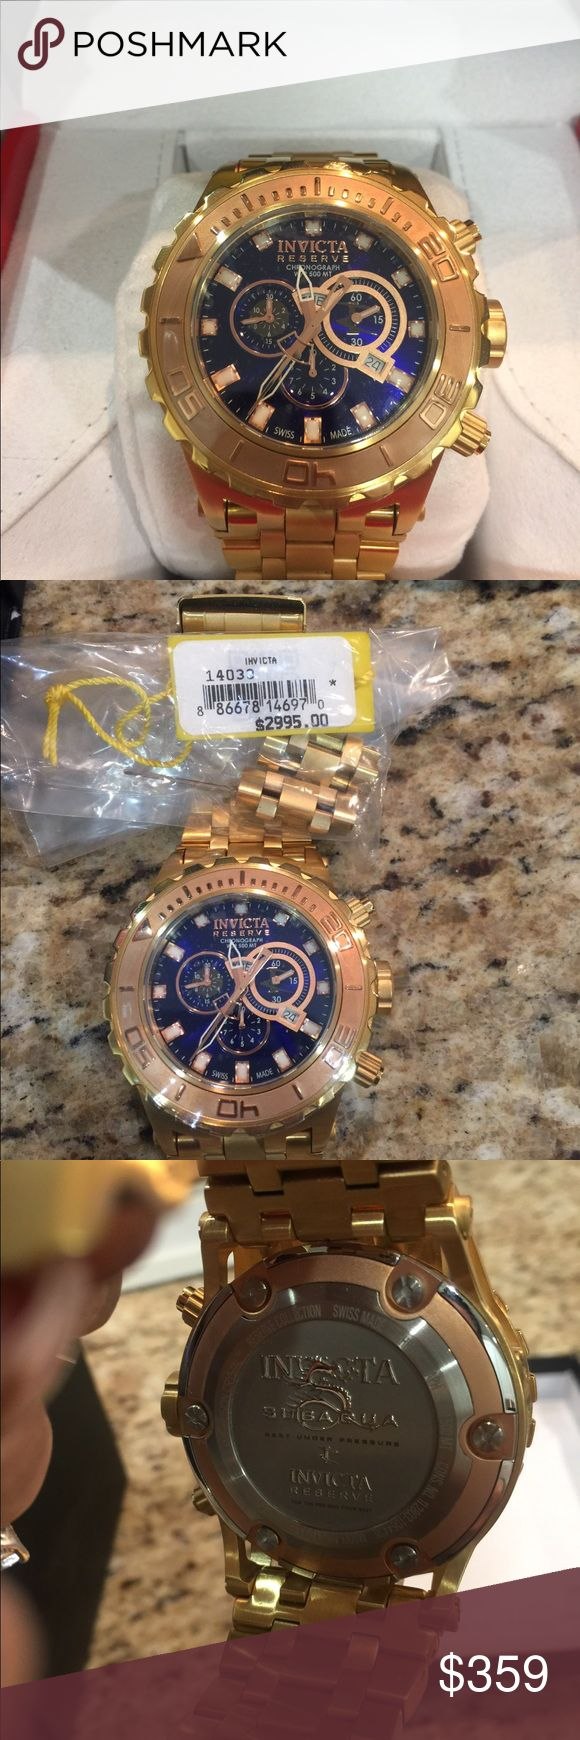 Men's Invicta Watch Gorgeous Invicta Reserve Specialty Subaqua Chronograph Mirror Polish Bracelet Watch. New in box with paperwork! Invicta Accessories Watches